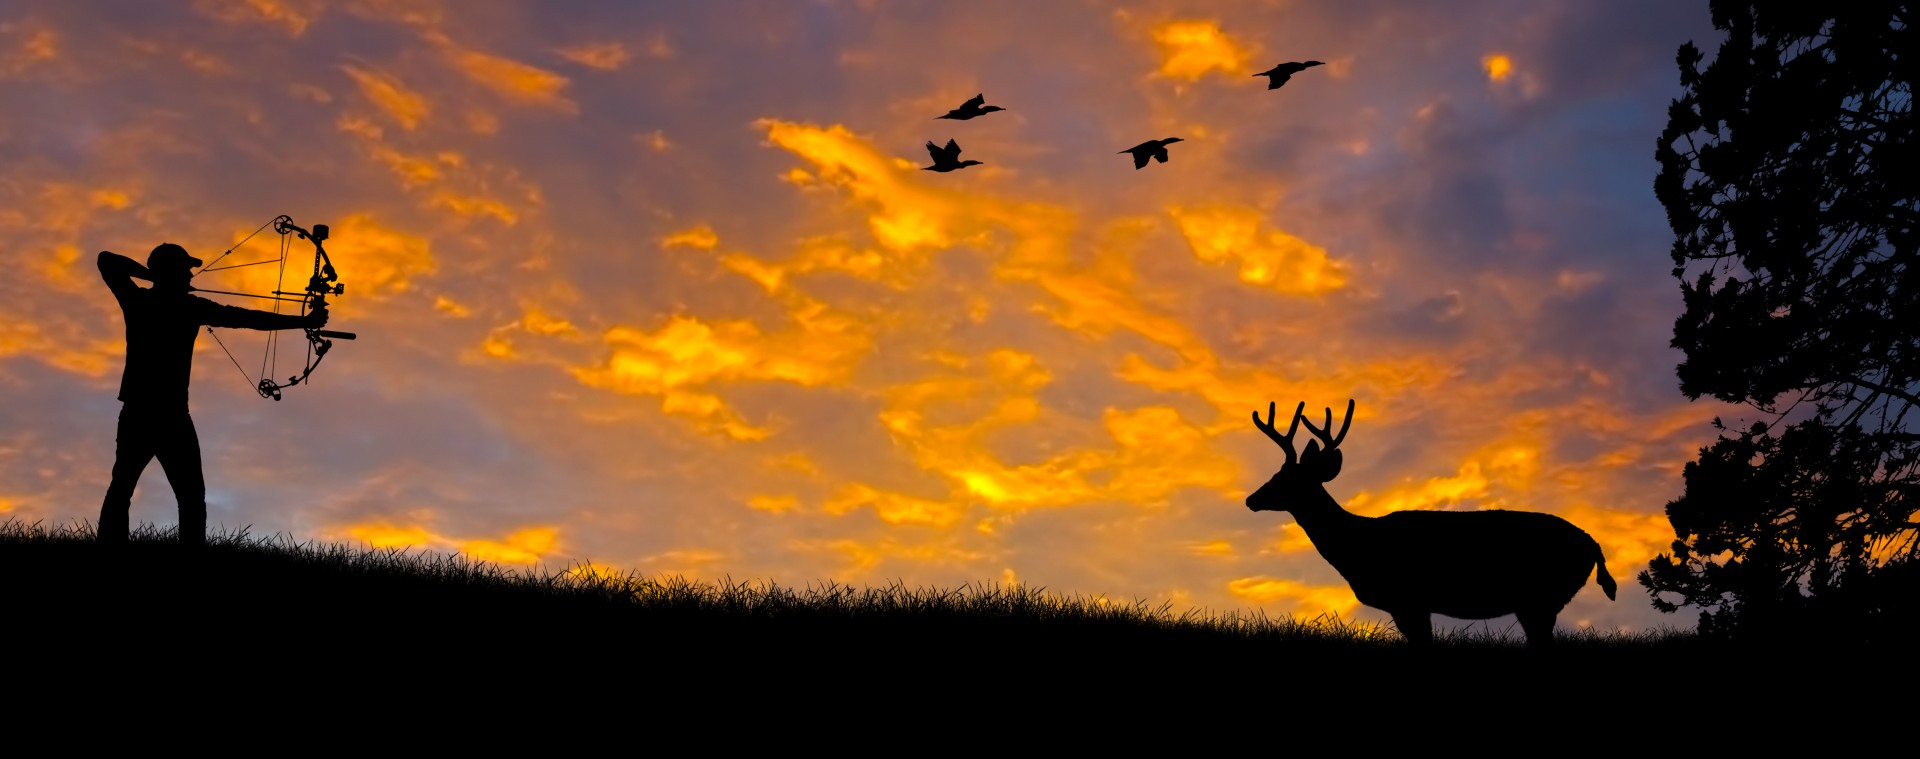 deer in bow hunter sights at sunset